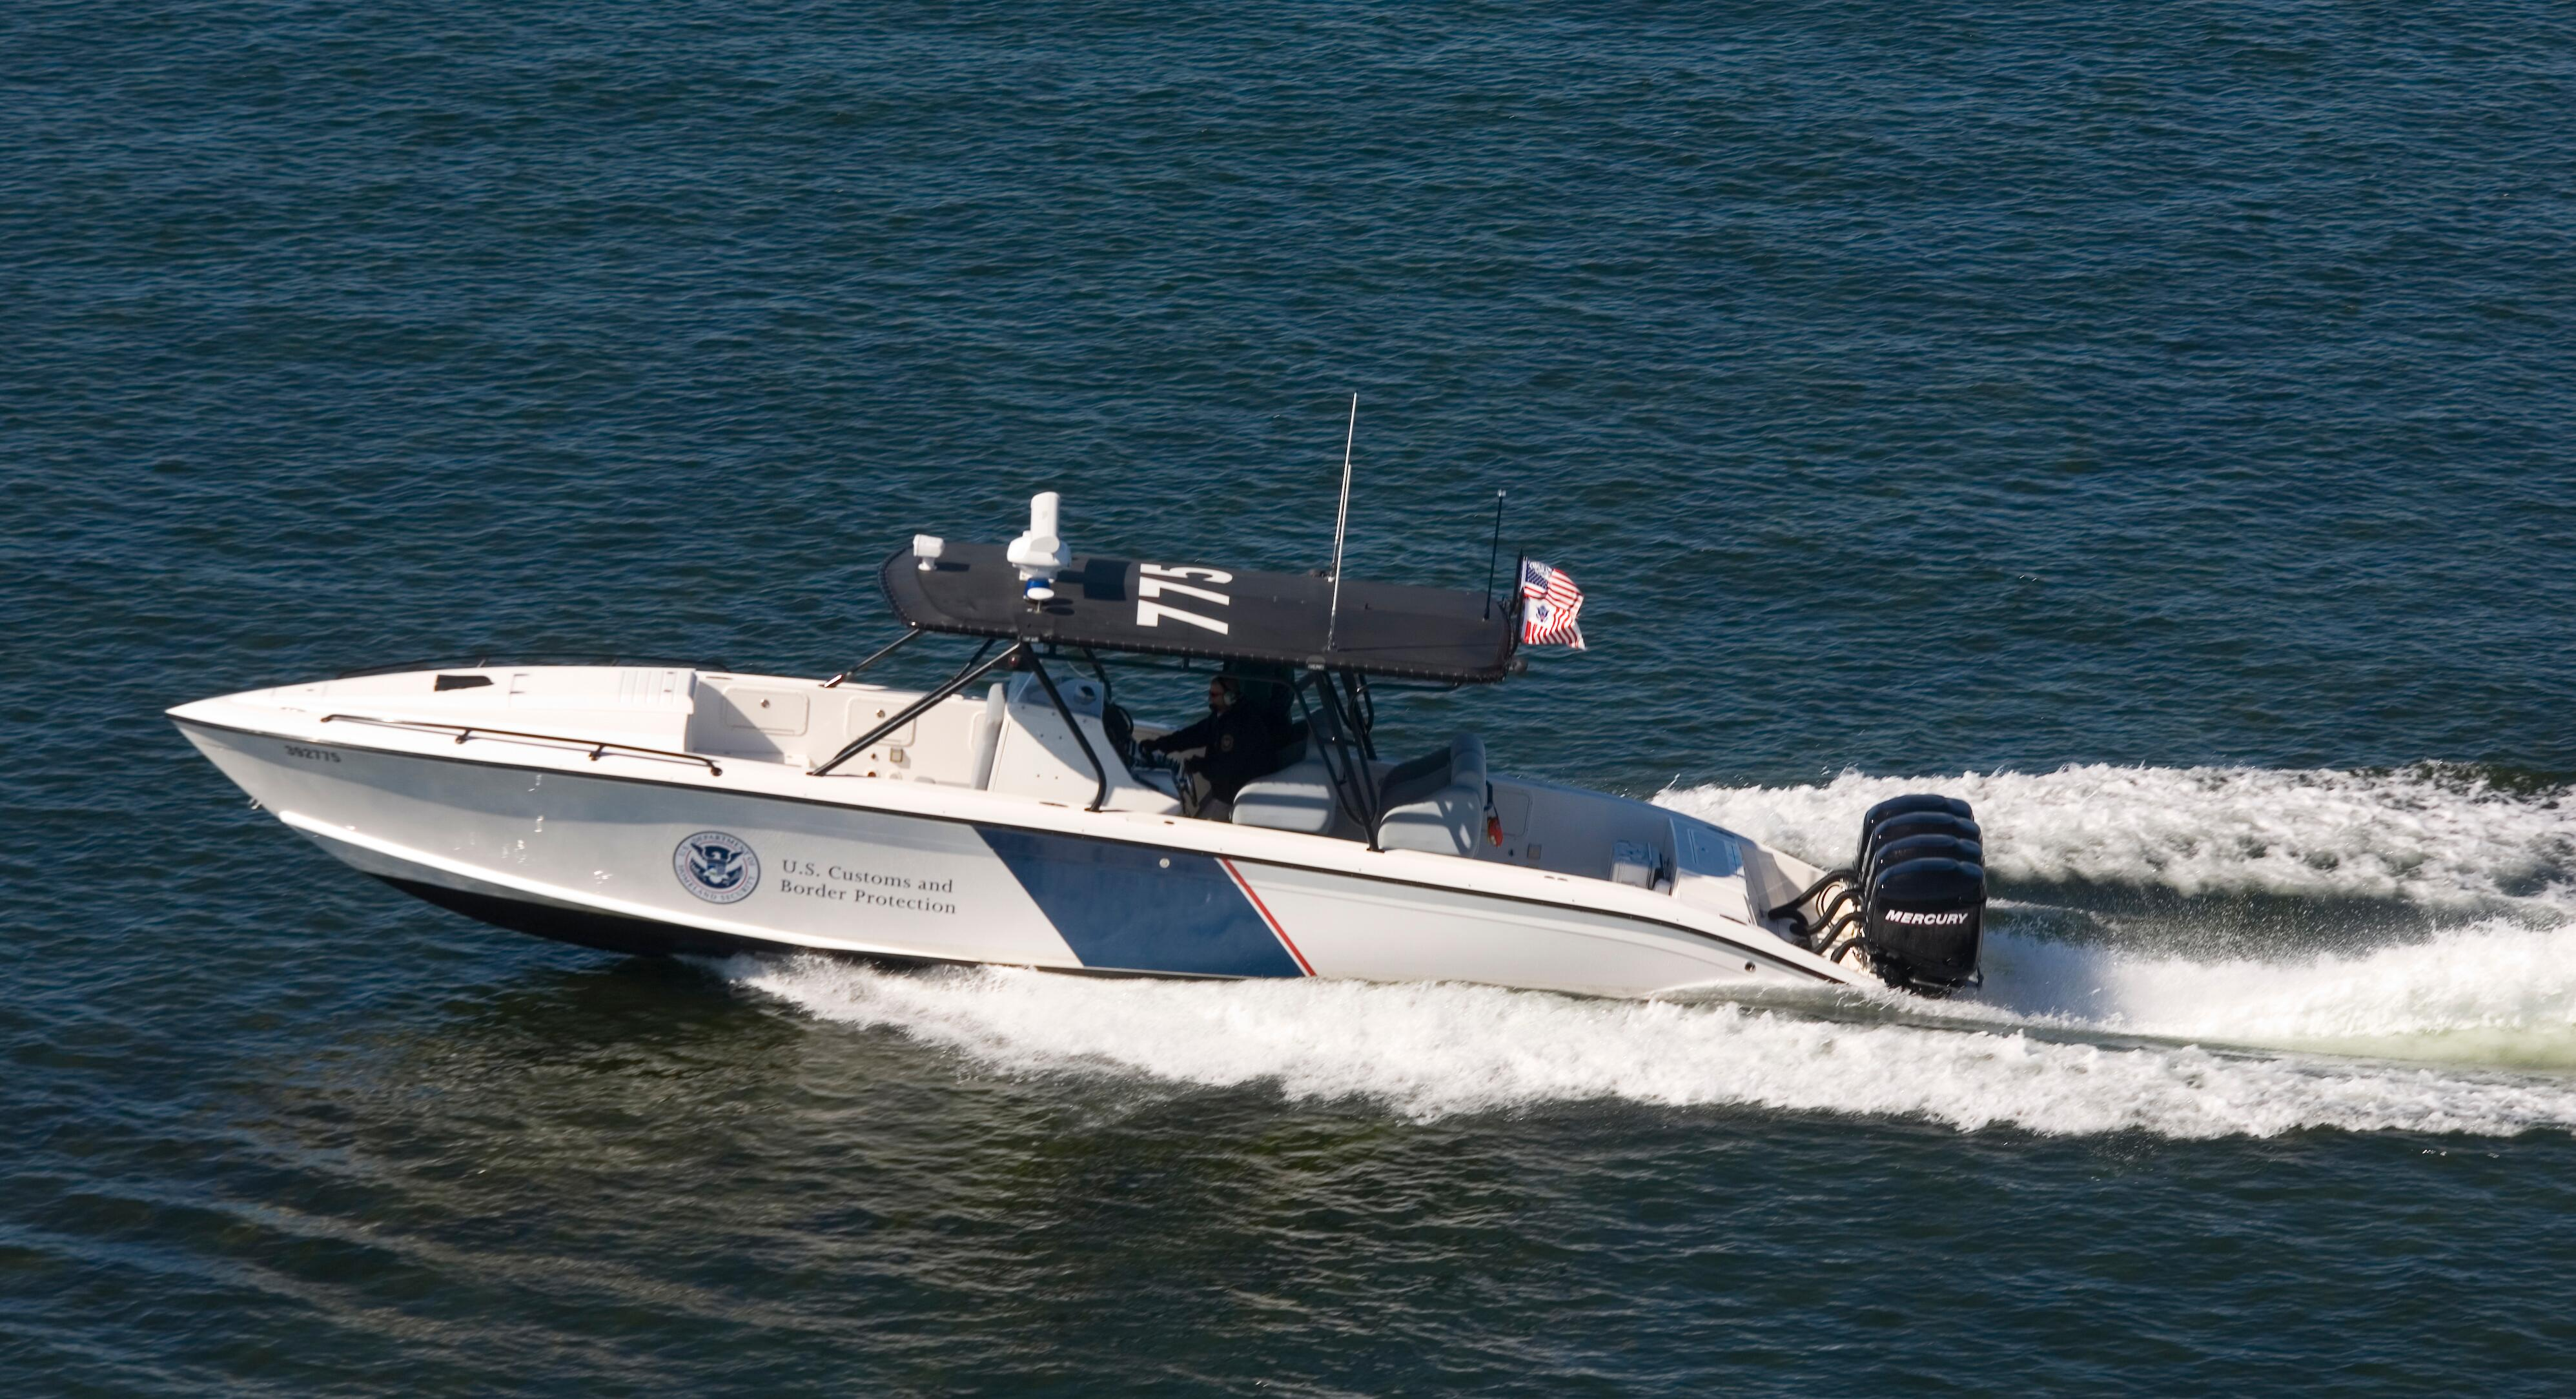 A CBP midnight express' in pursuit along the northern border region.